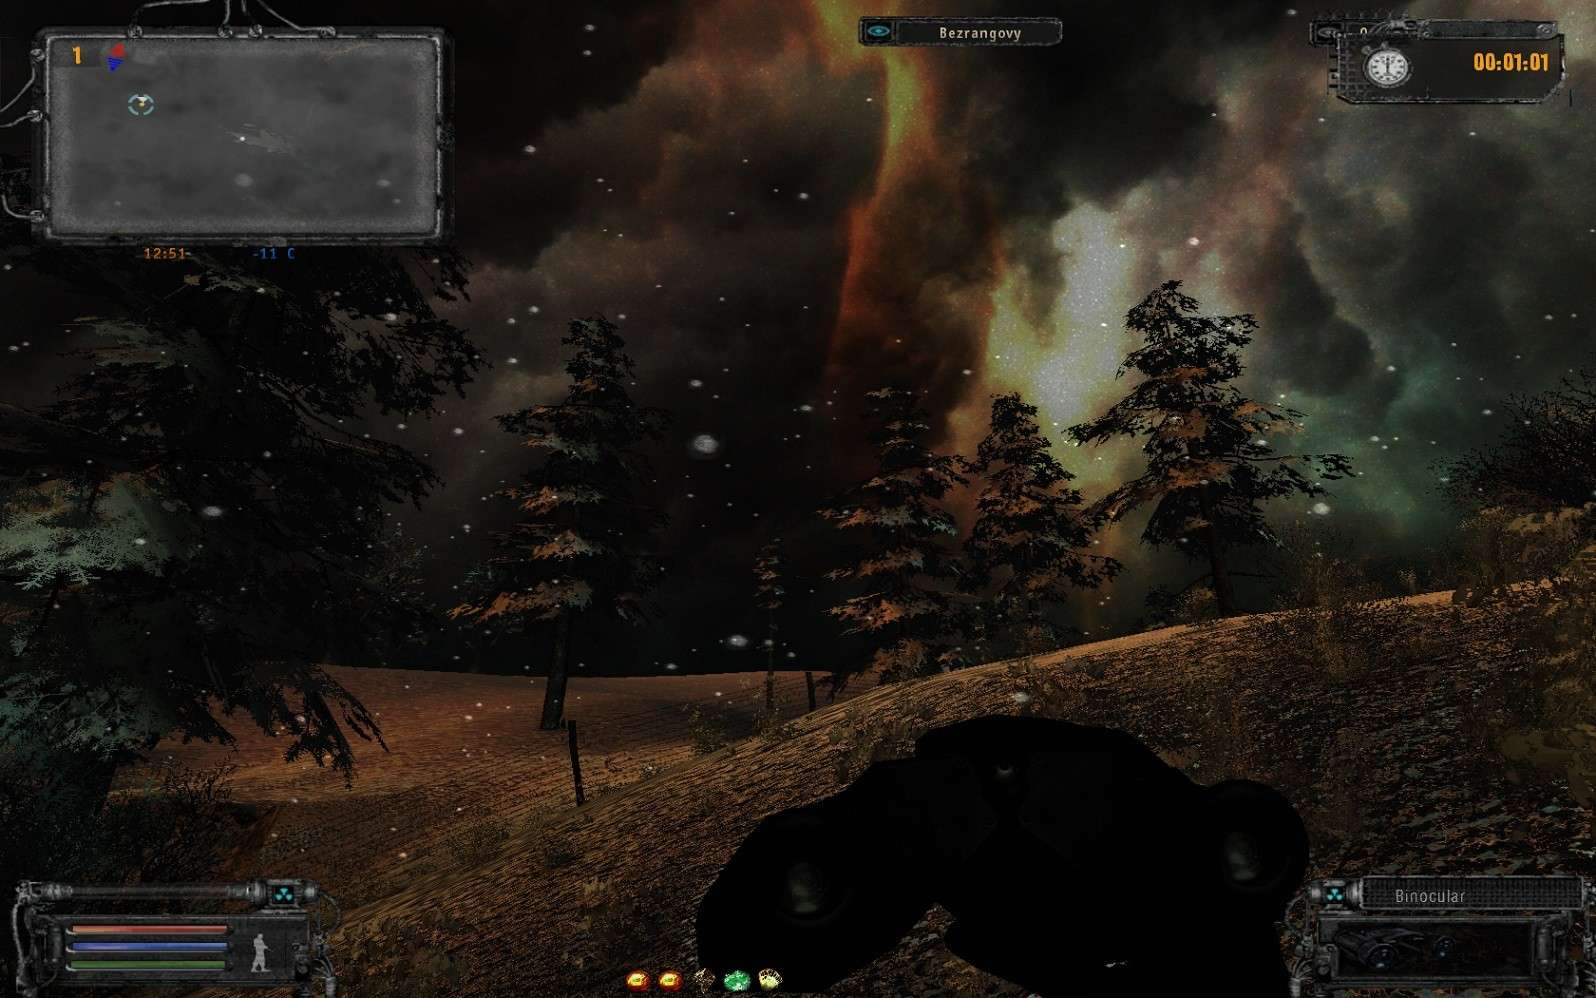 Nature Winter 2.3 Black Edition (eng 1.01 Deluxe) Images Gallery! Serie:1# A11